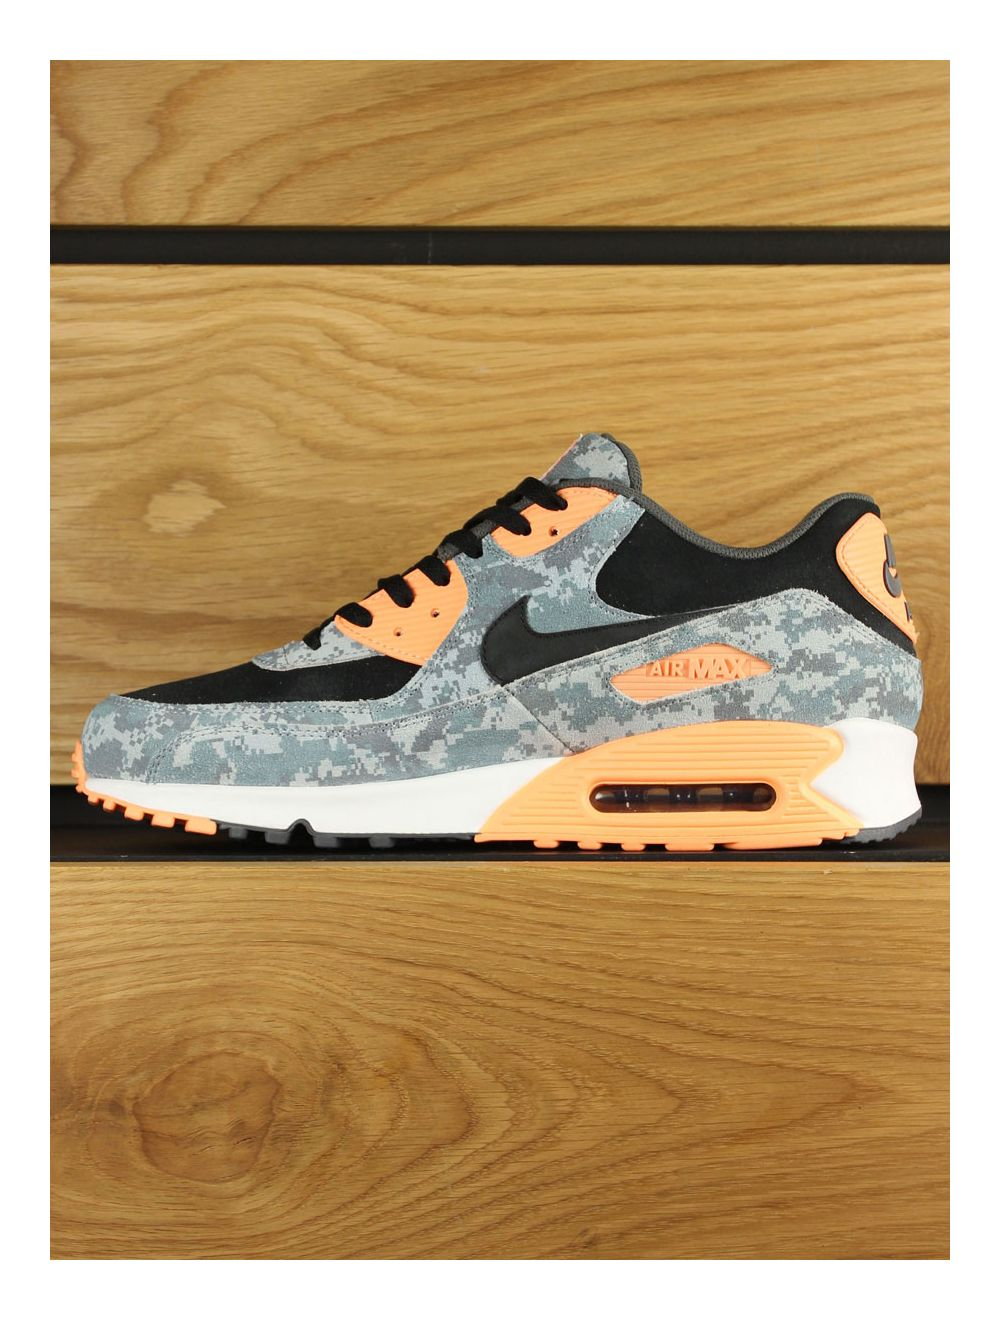 nike air max 90 limited edition 2016 nz|Free delivery!